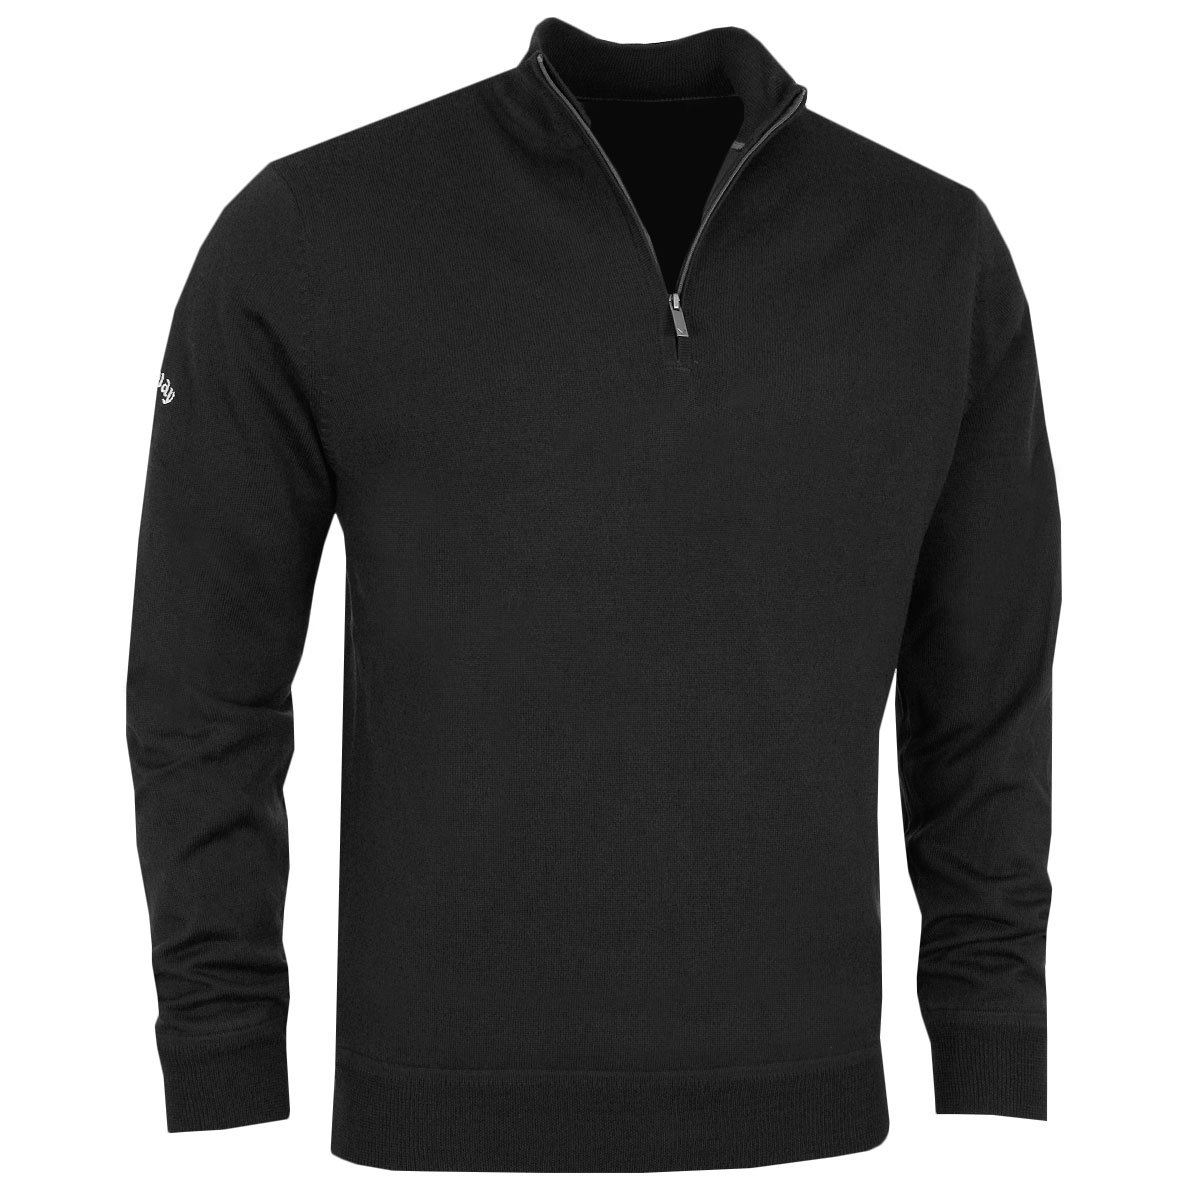 Amazon Best Sellers: Best Men's Golf Sweaters